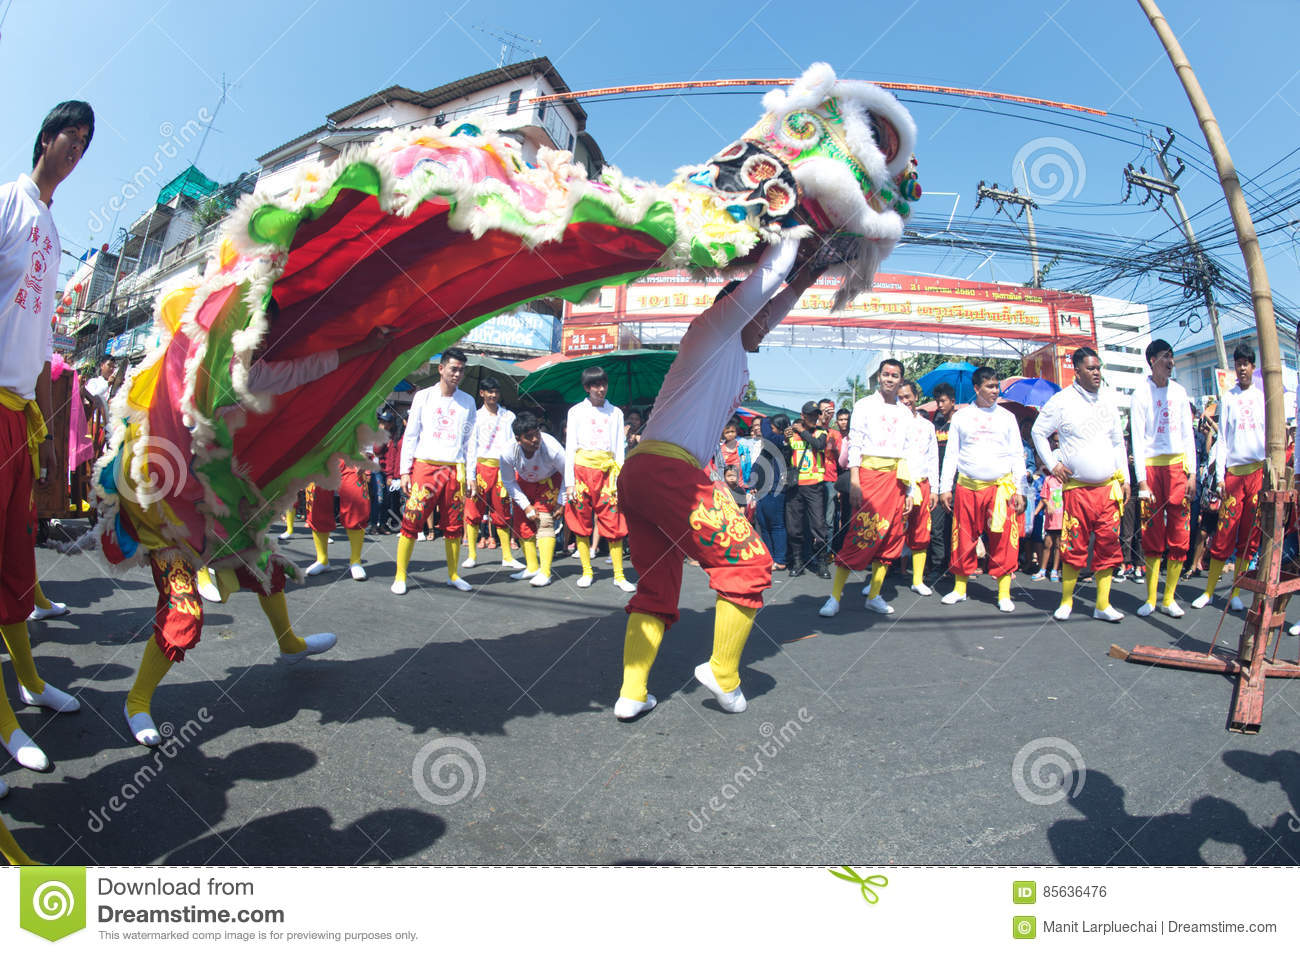 Group of Lion dancing performers during the celebration.